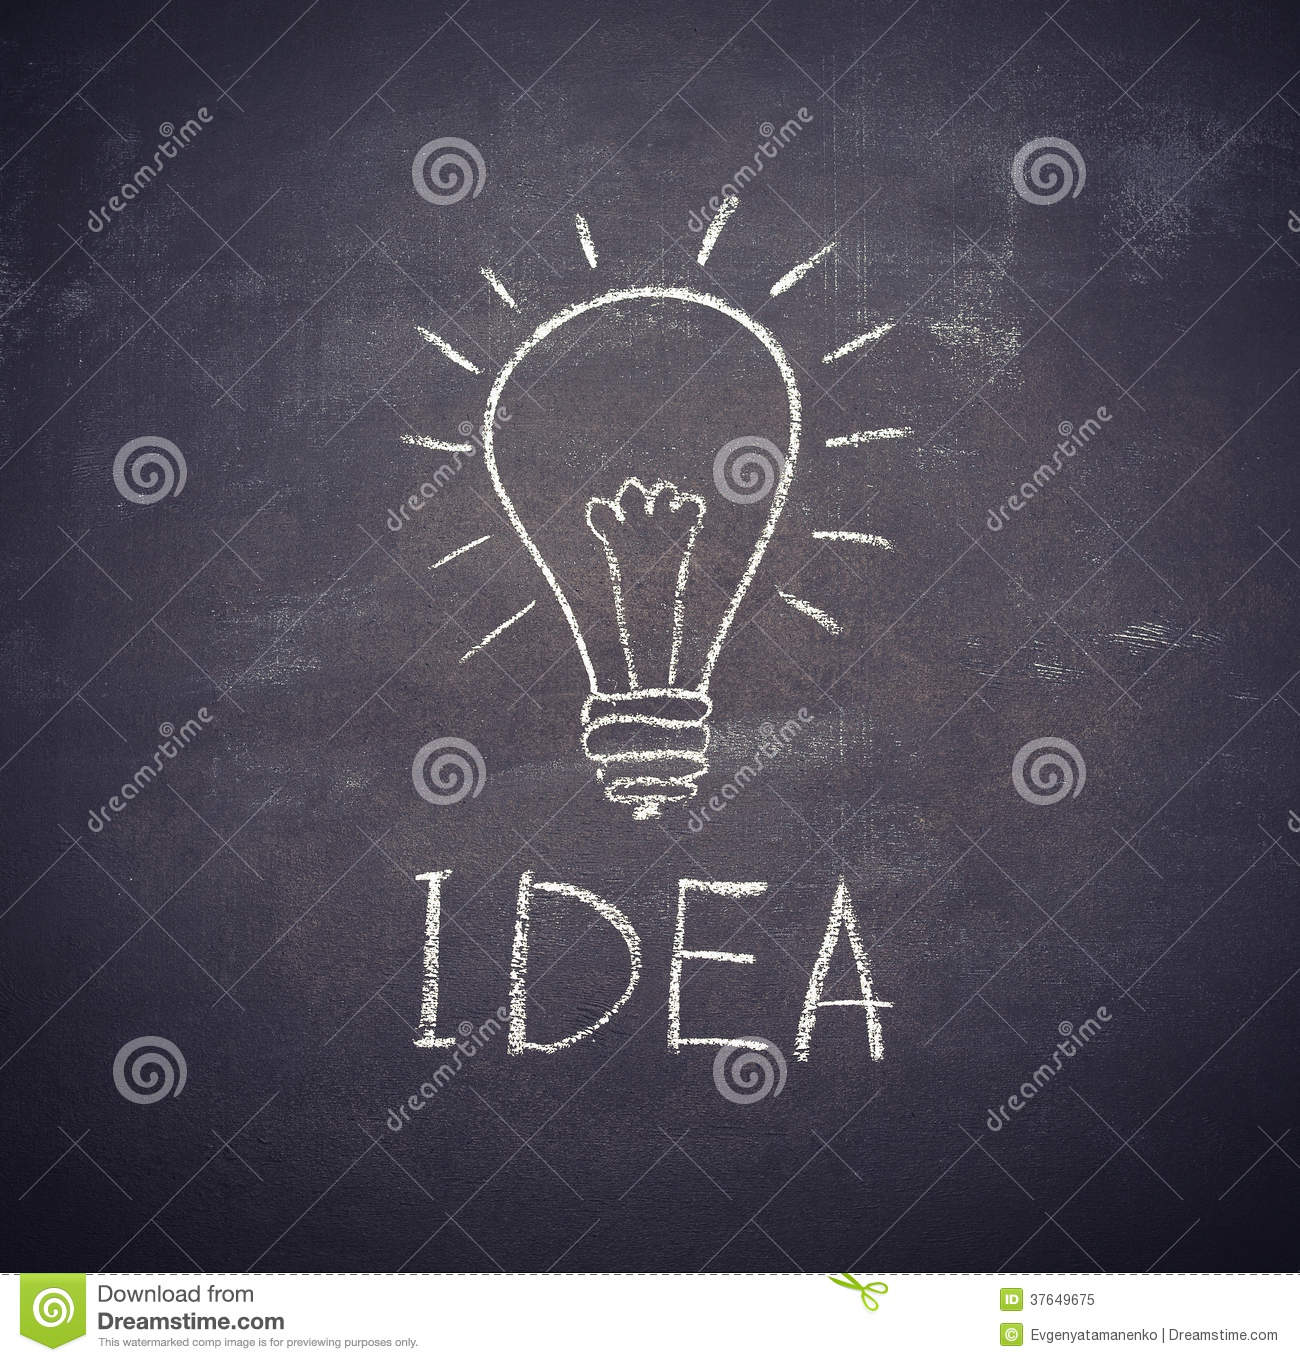 Idea Light Bulb Drawn With Chalk On Blackboard Royalty